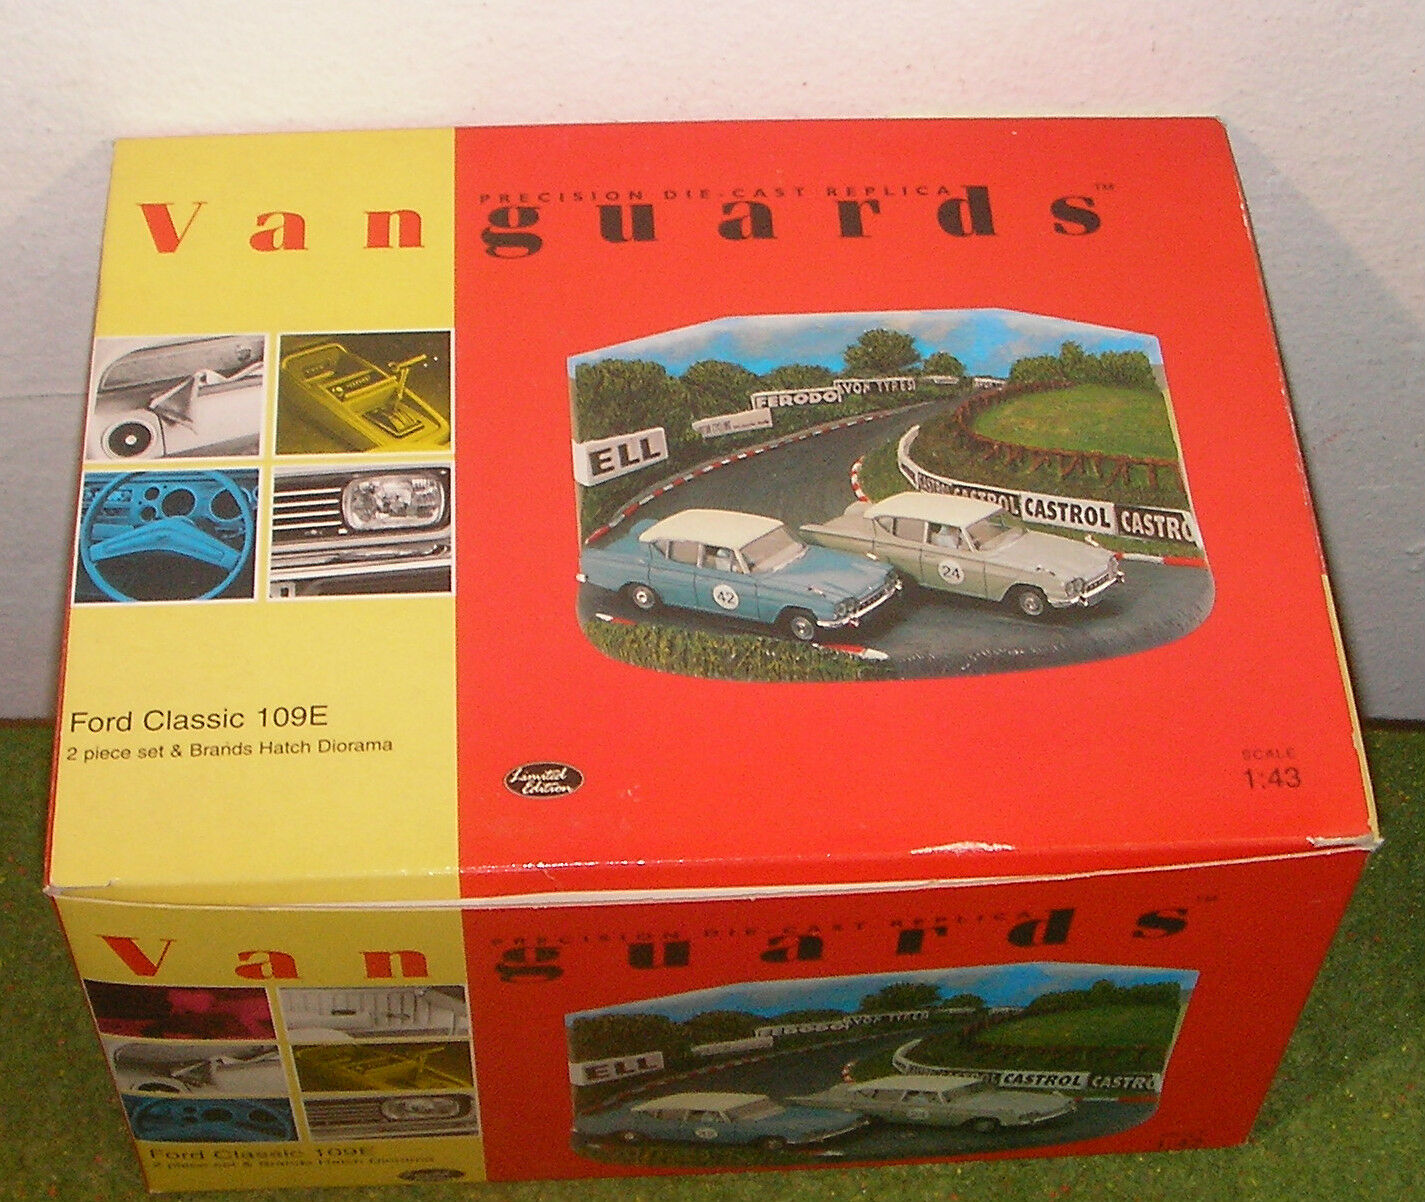 VANGUARDS DIE-CAST 1 43 SCALE RD1002 FORD CLASSIC 109E BRANDS HATCH -- CORGI